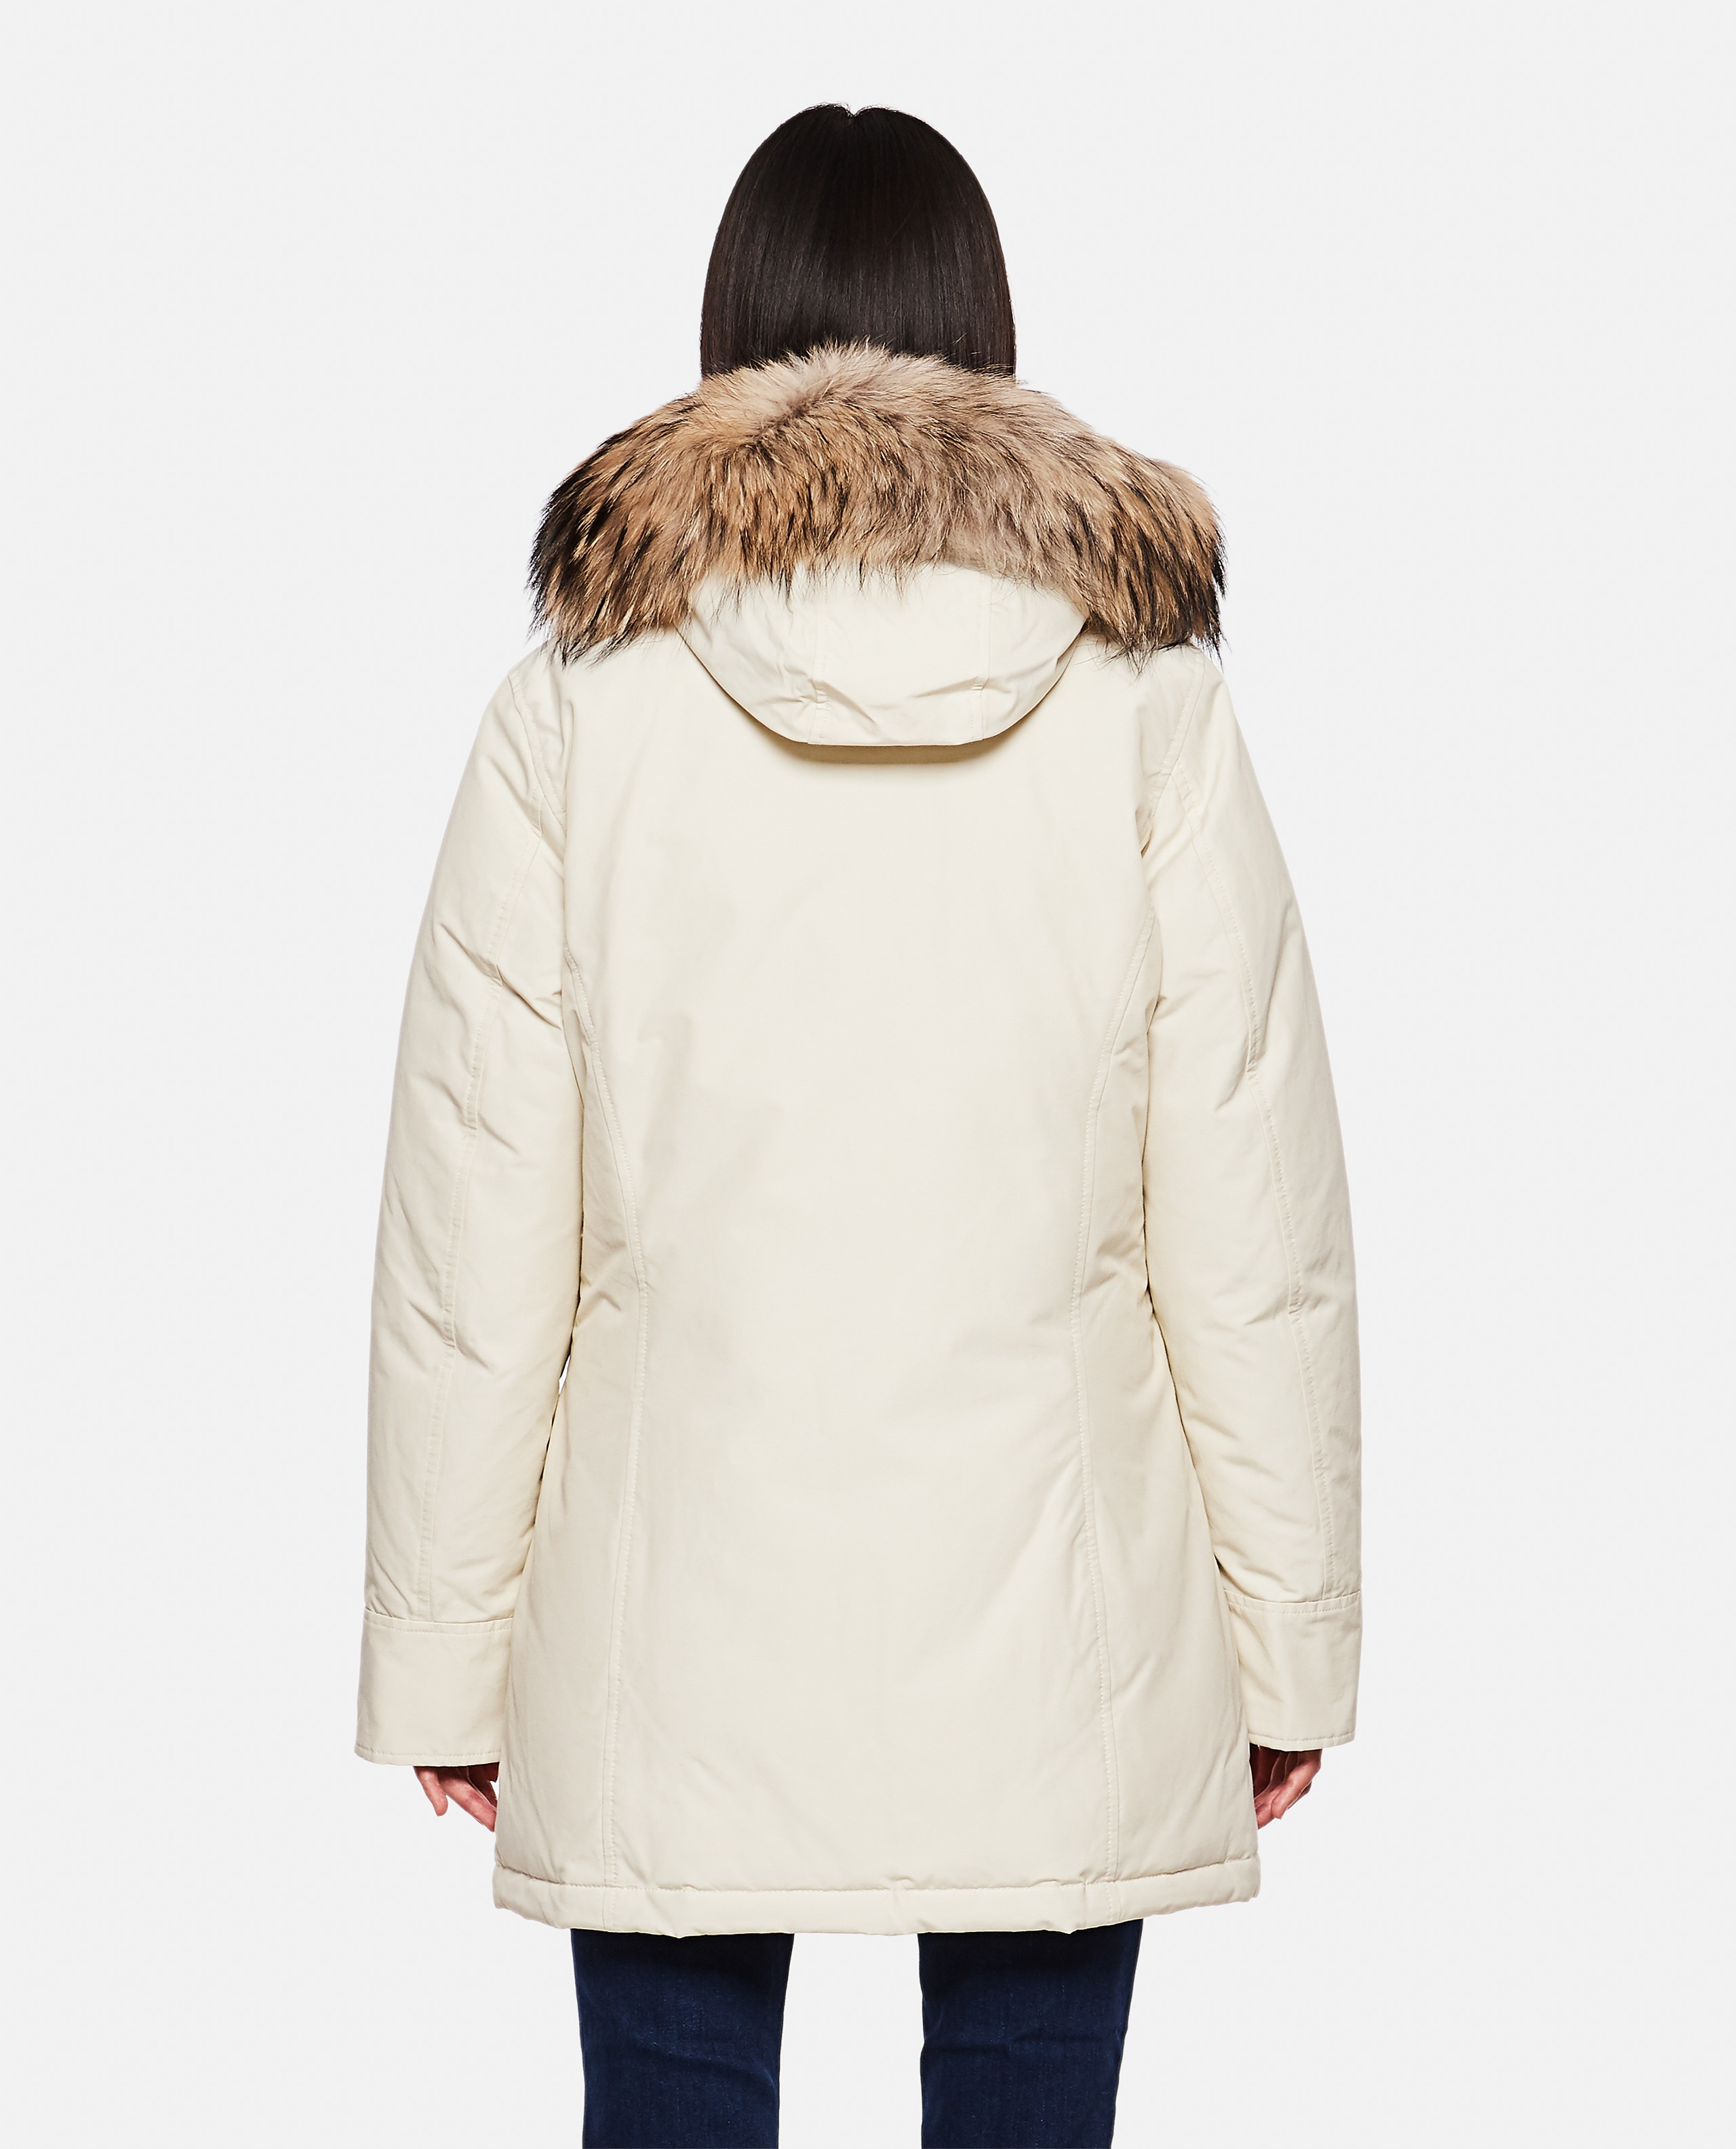 Parka in cotone Donna Woolrich 000275740040628 3